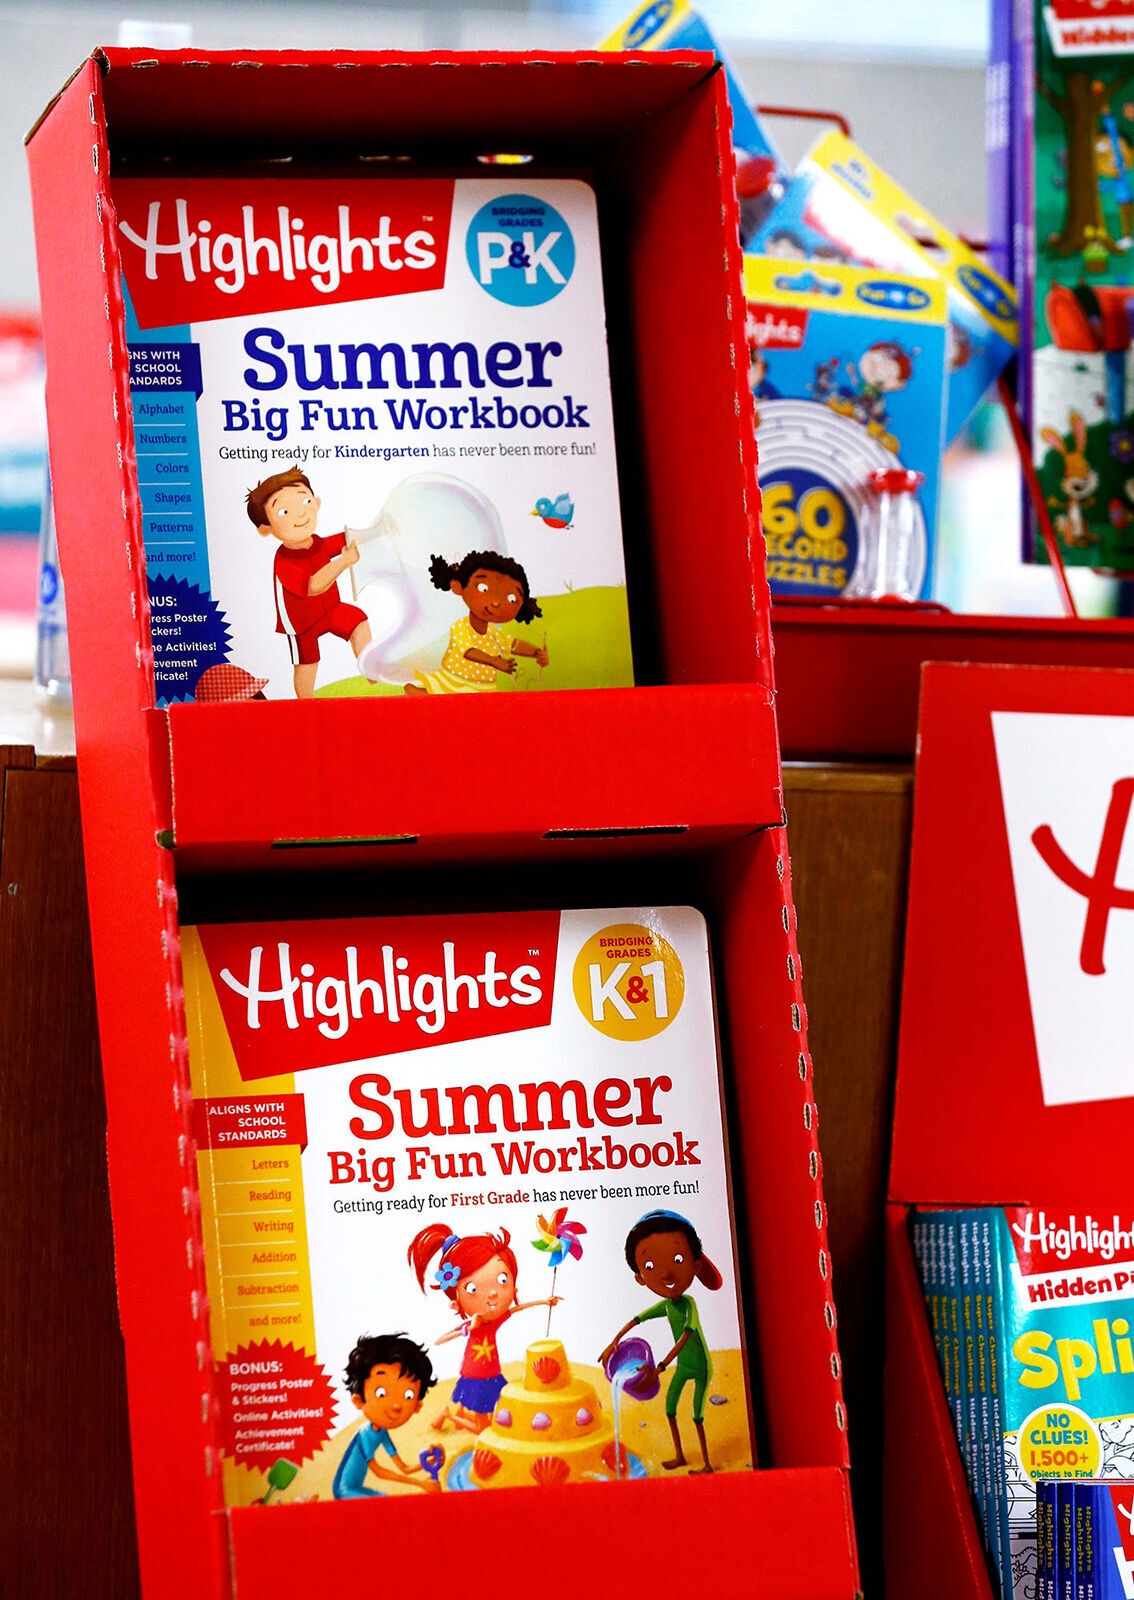 Highlights for Children is celebrating its 75th anniversary.